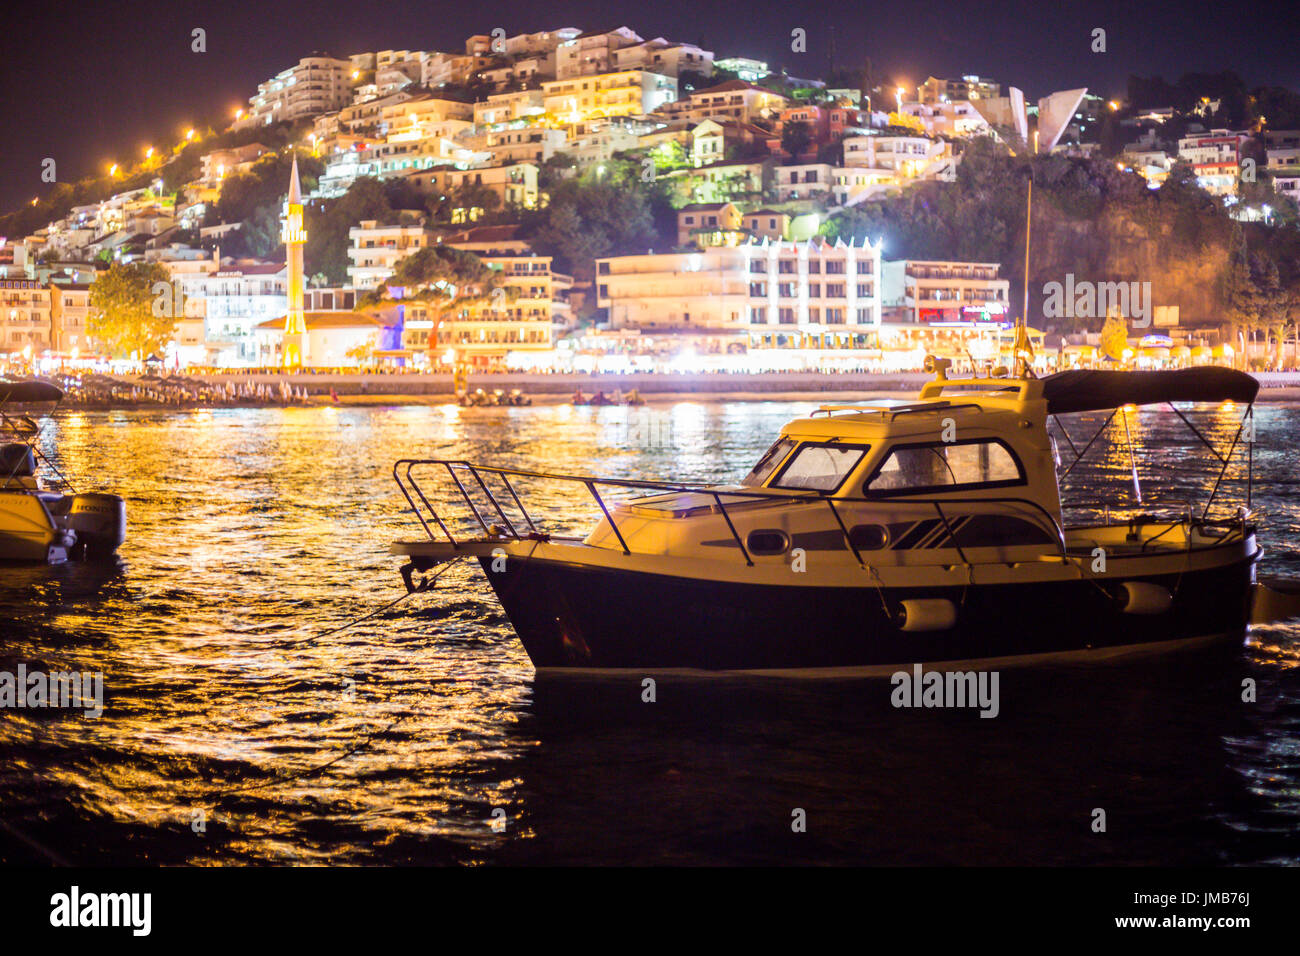 Closeup of a boat on sea with city lights in the background in the evening - Stock Image